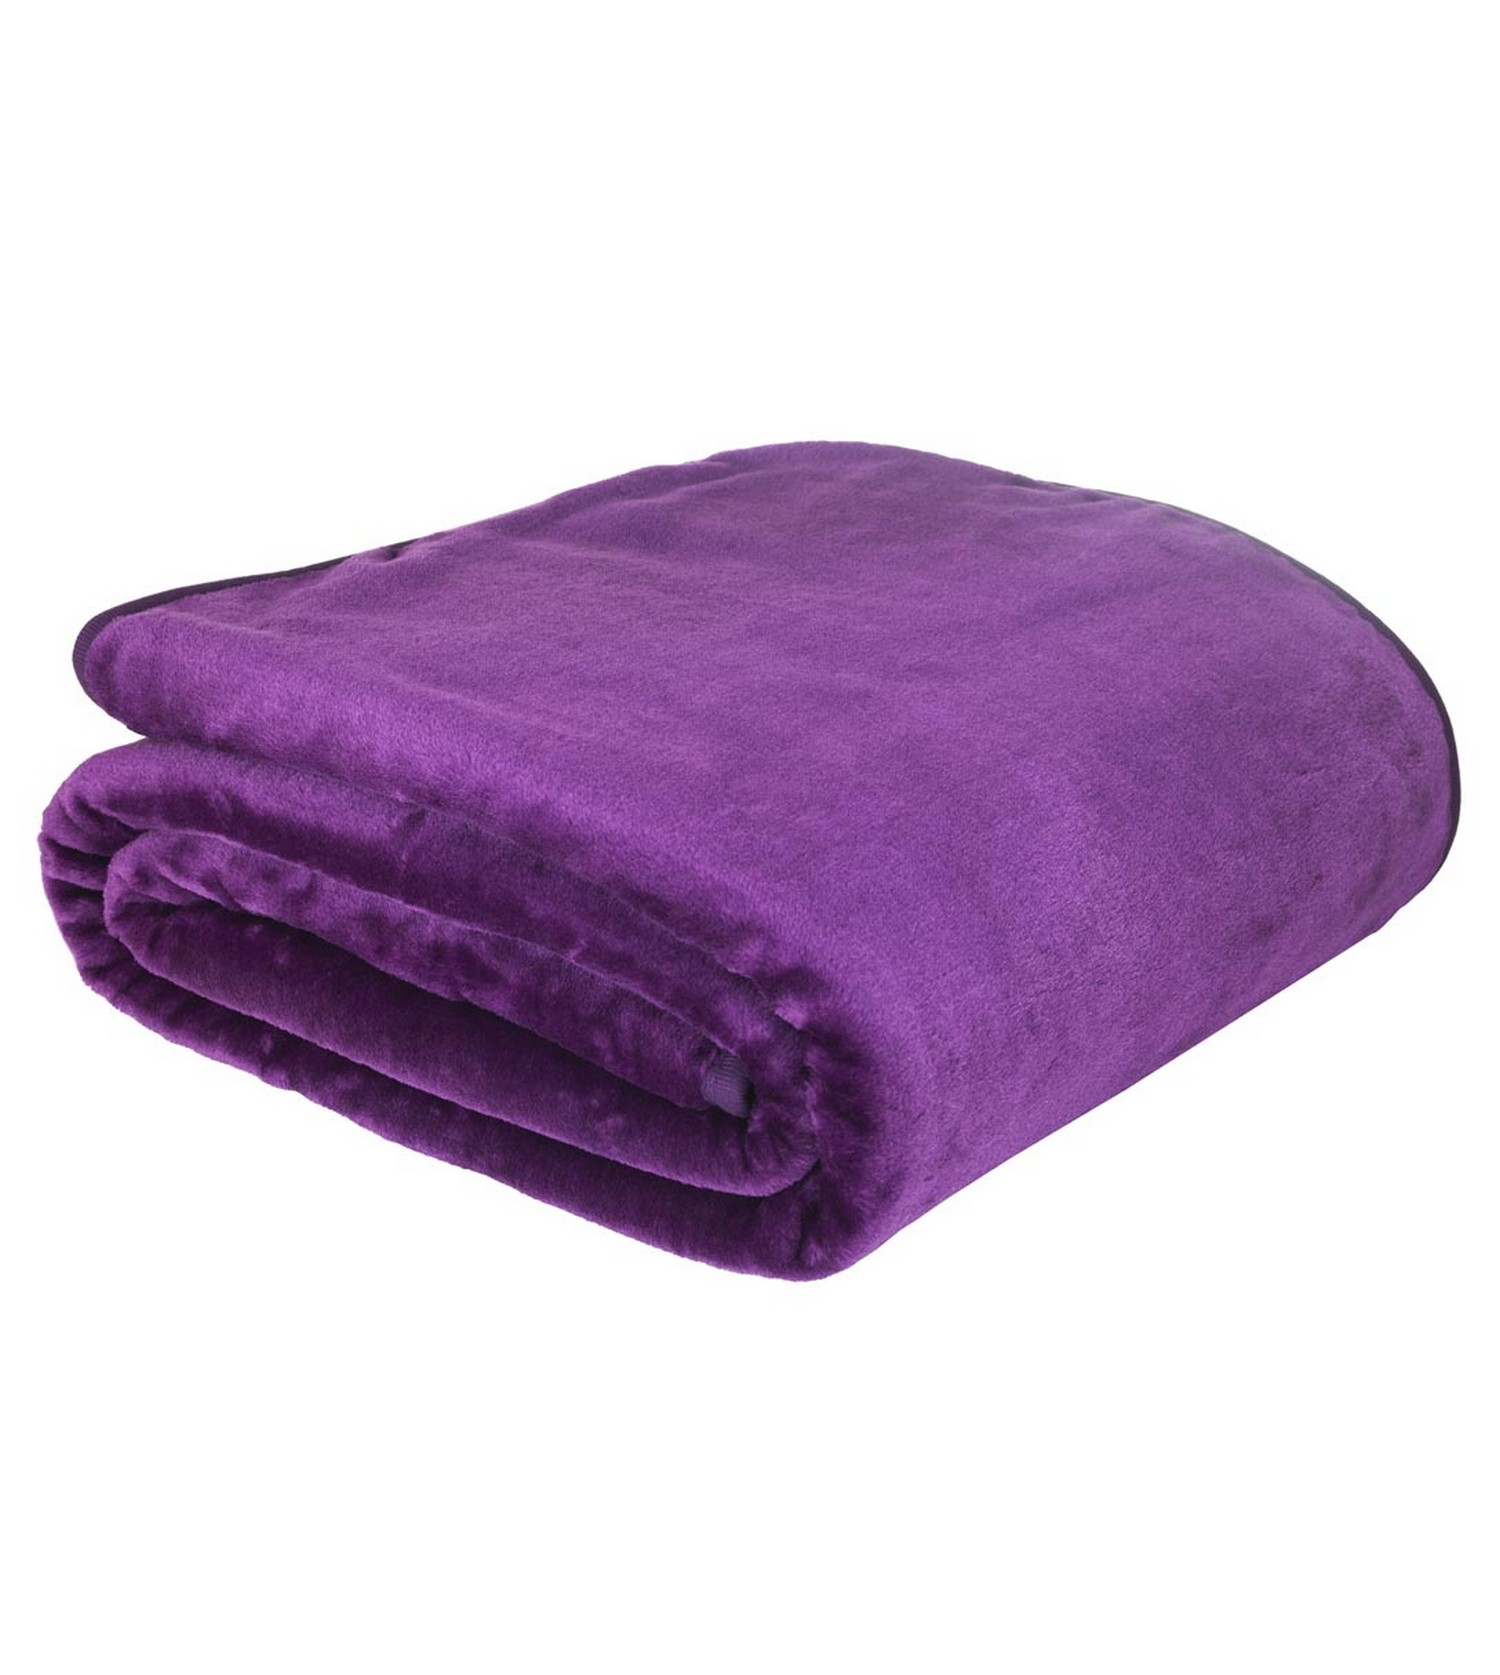 Faux fur throw blanket raschel warm cosy soft catherine for Soft blankets and throws